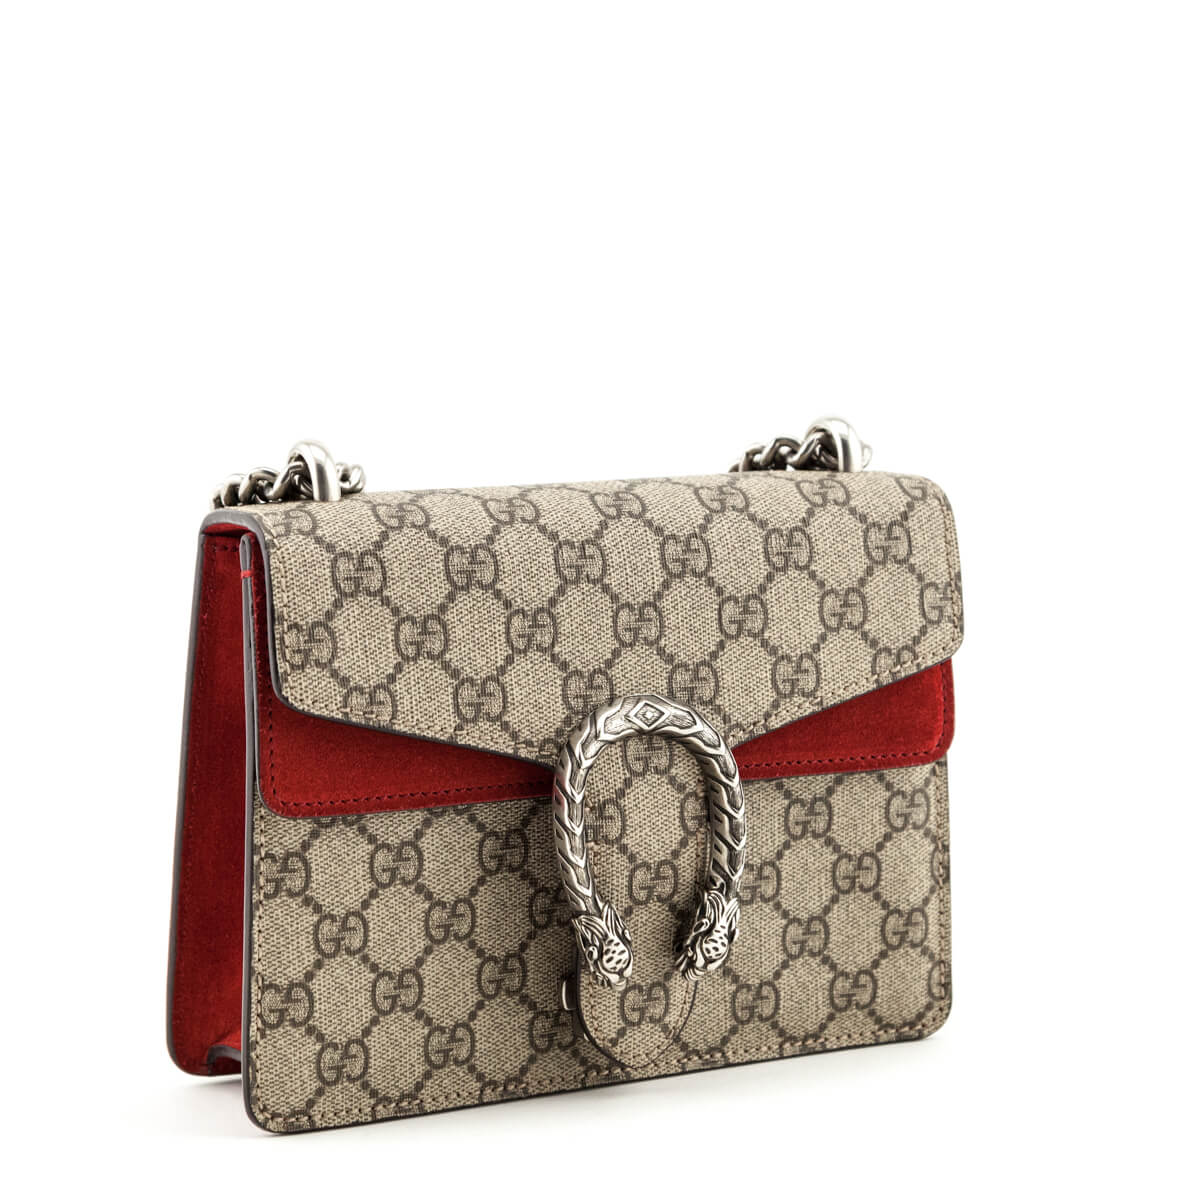 39415660 ... Gucci GG Supreme Red Suede Mini Dionysus Bag - LOVE that BAG - Preowned  Authentic Designer ...